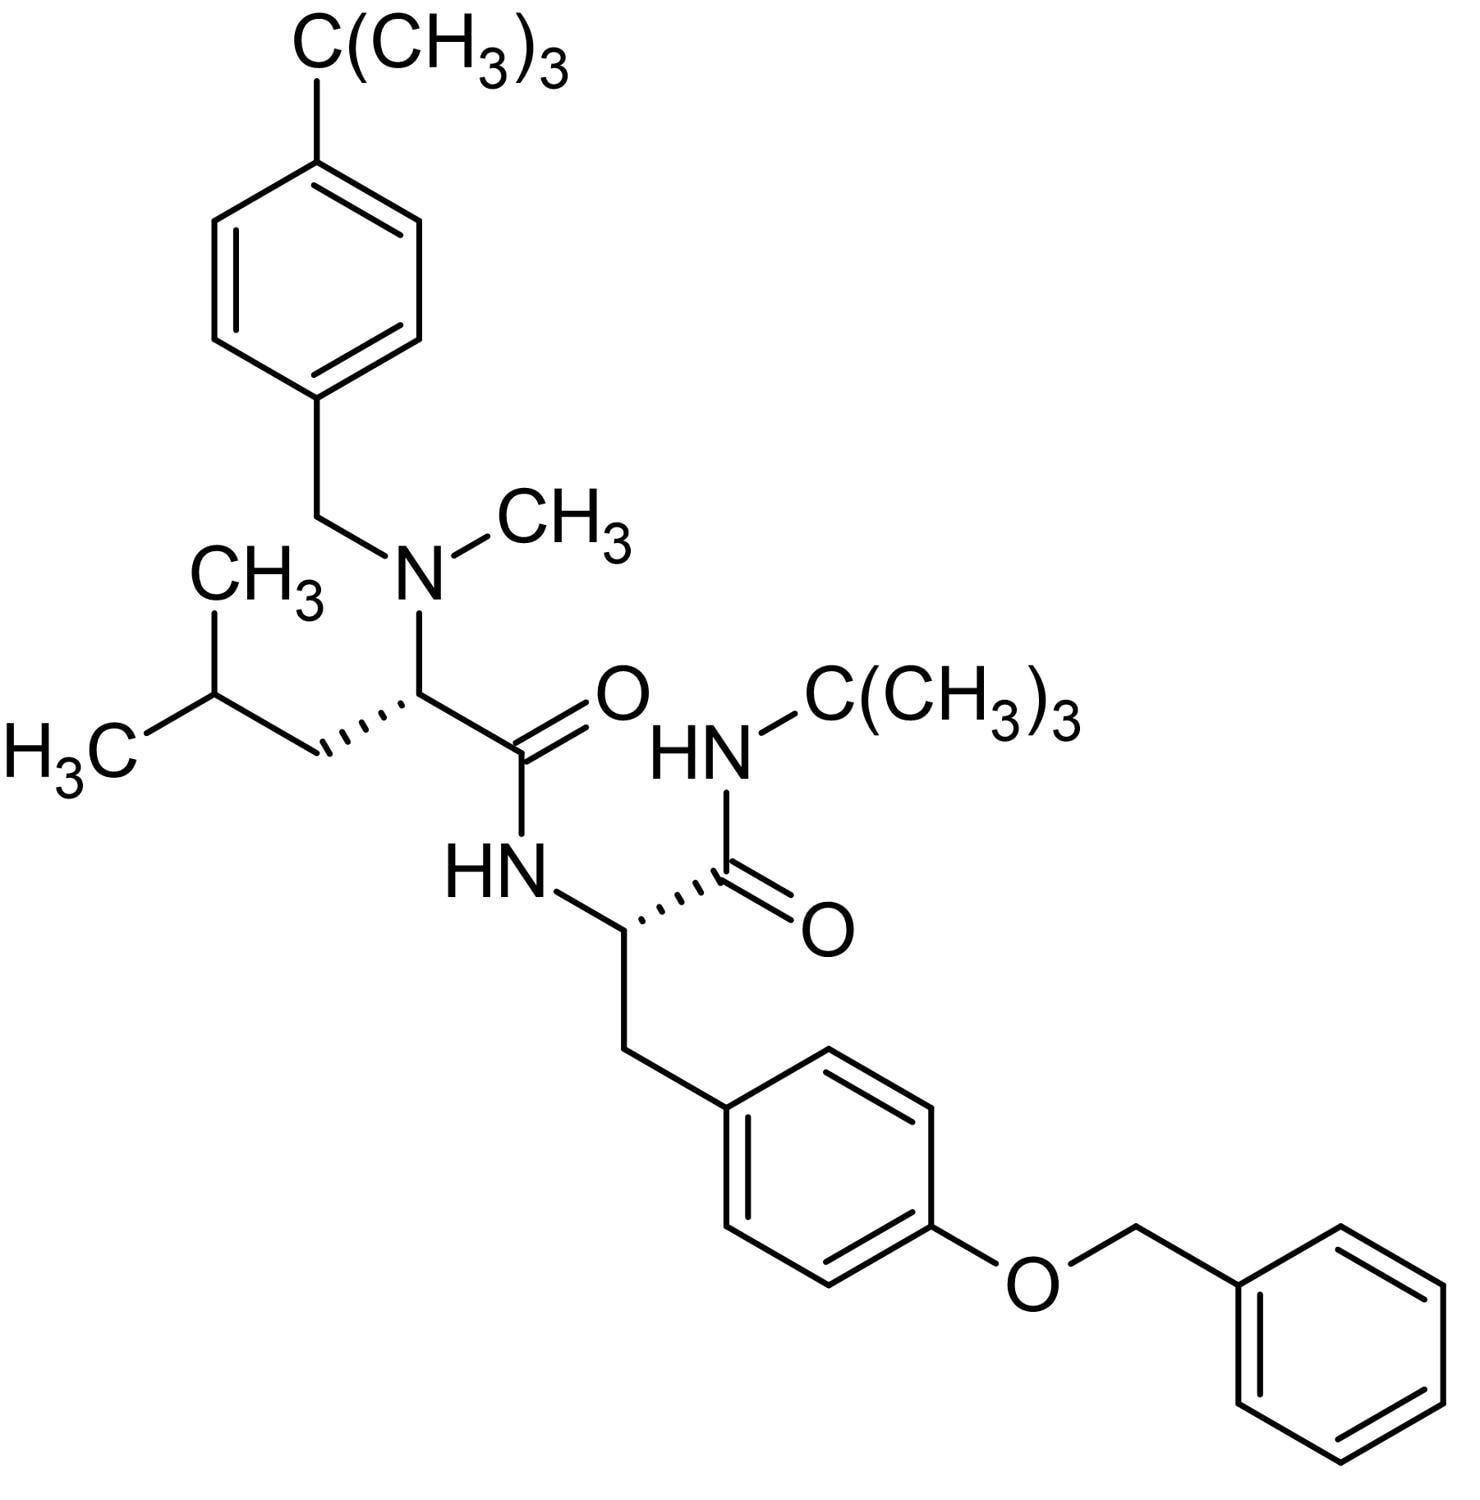 Chemical Structure - PD 173212, N-type voltage-gated Ca<sup>2+</sup> channel blocker (ab141832)